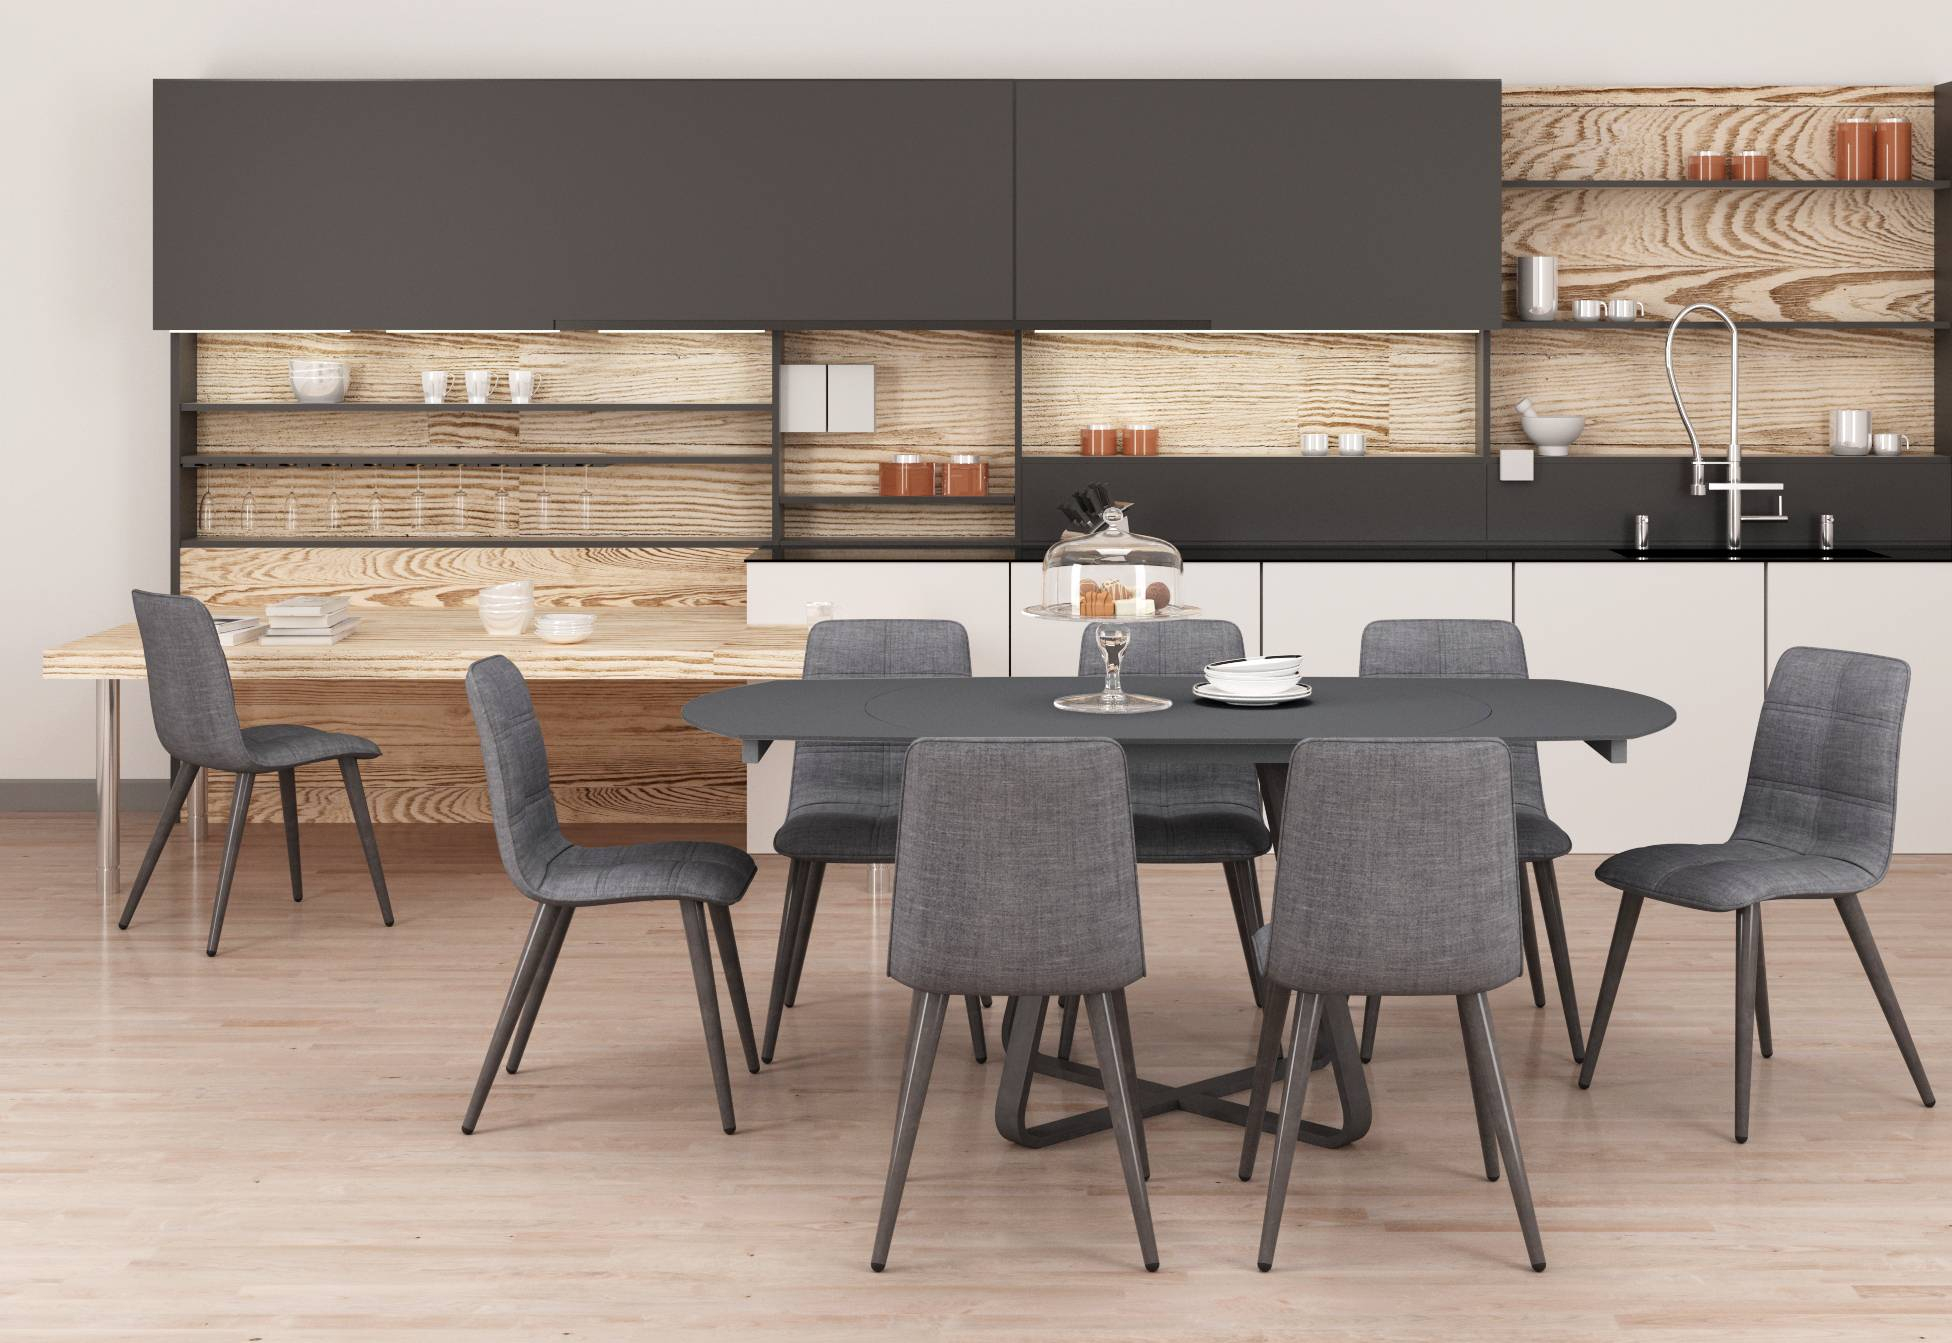 Esprit Extending Dining Table Regarding Most Popular Black Wash Banks Extending Dining Tables (View 16 of 25)